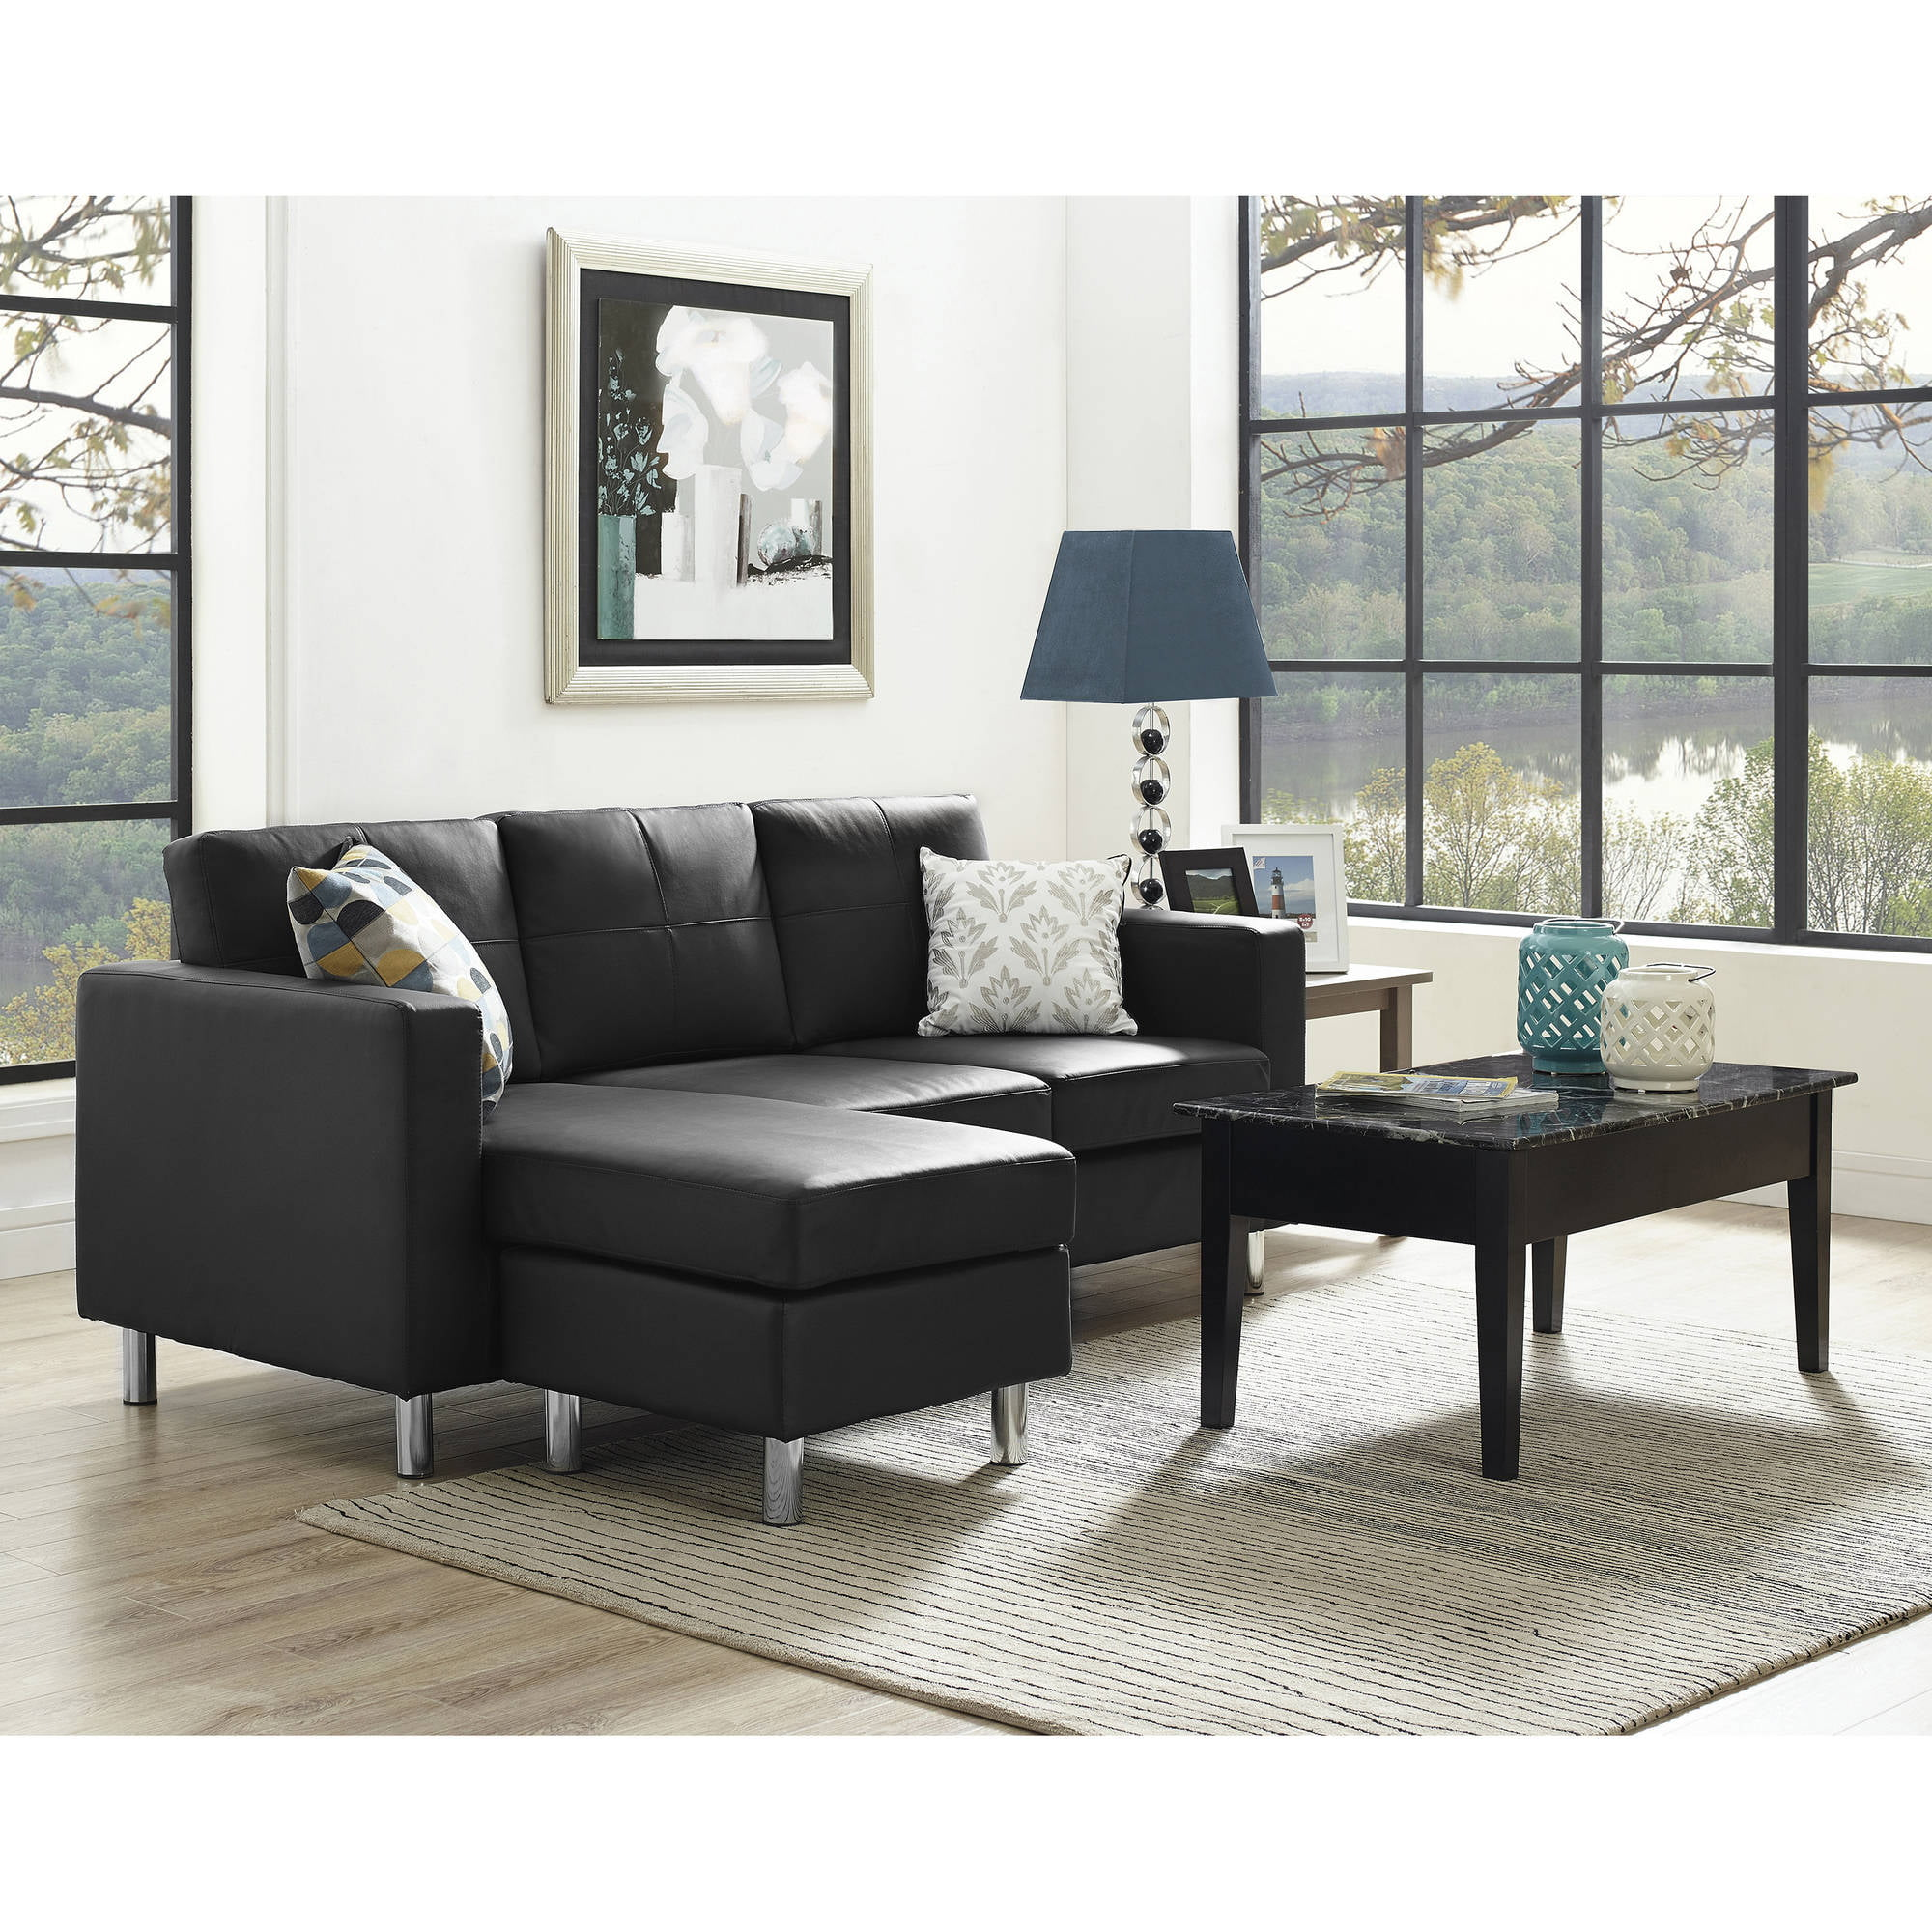 Small Spaces Living Room Value Bundle Walmart